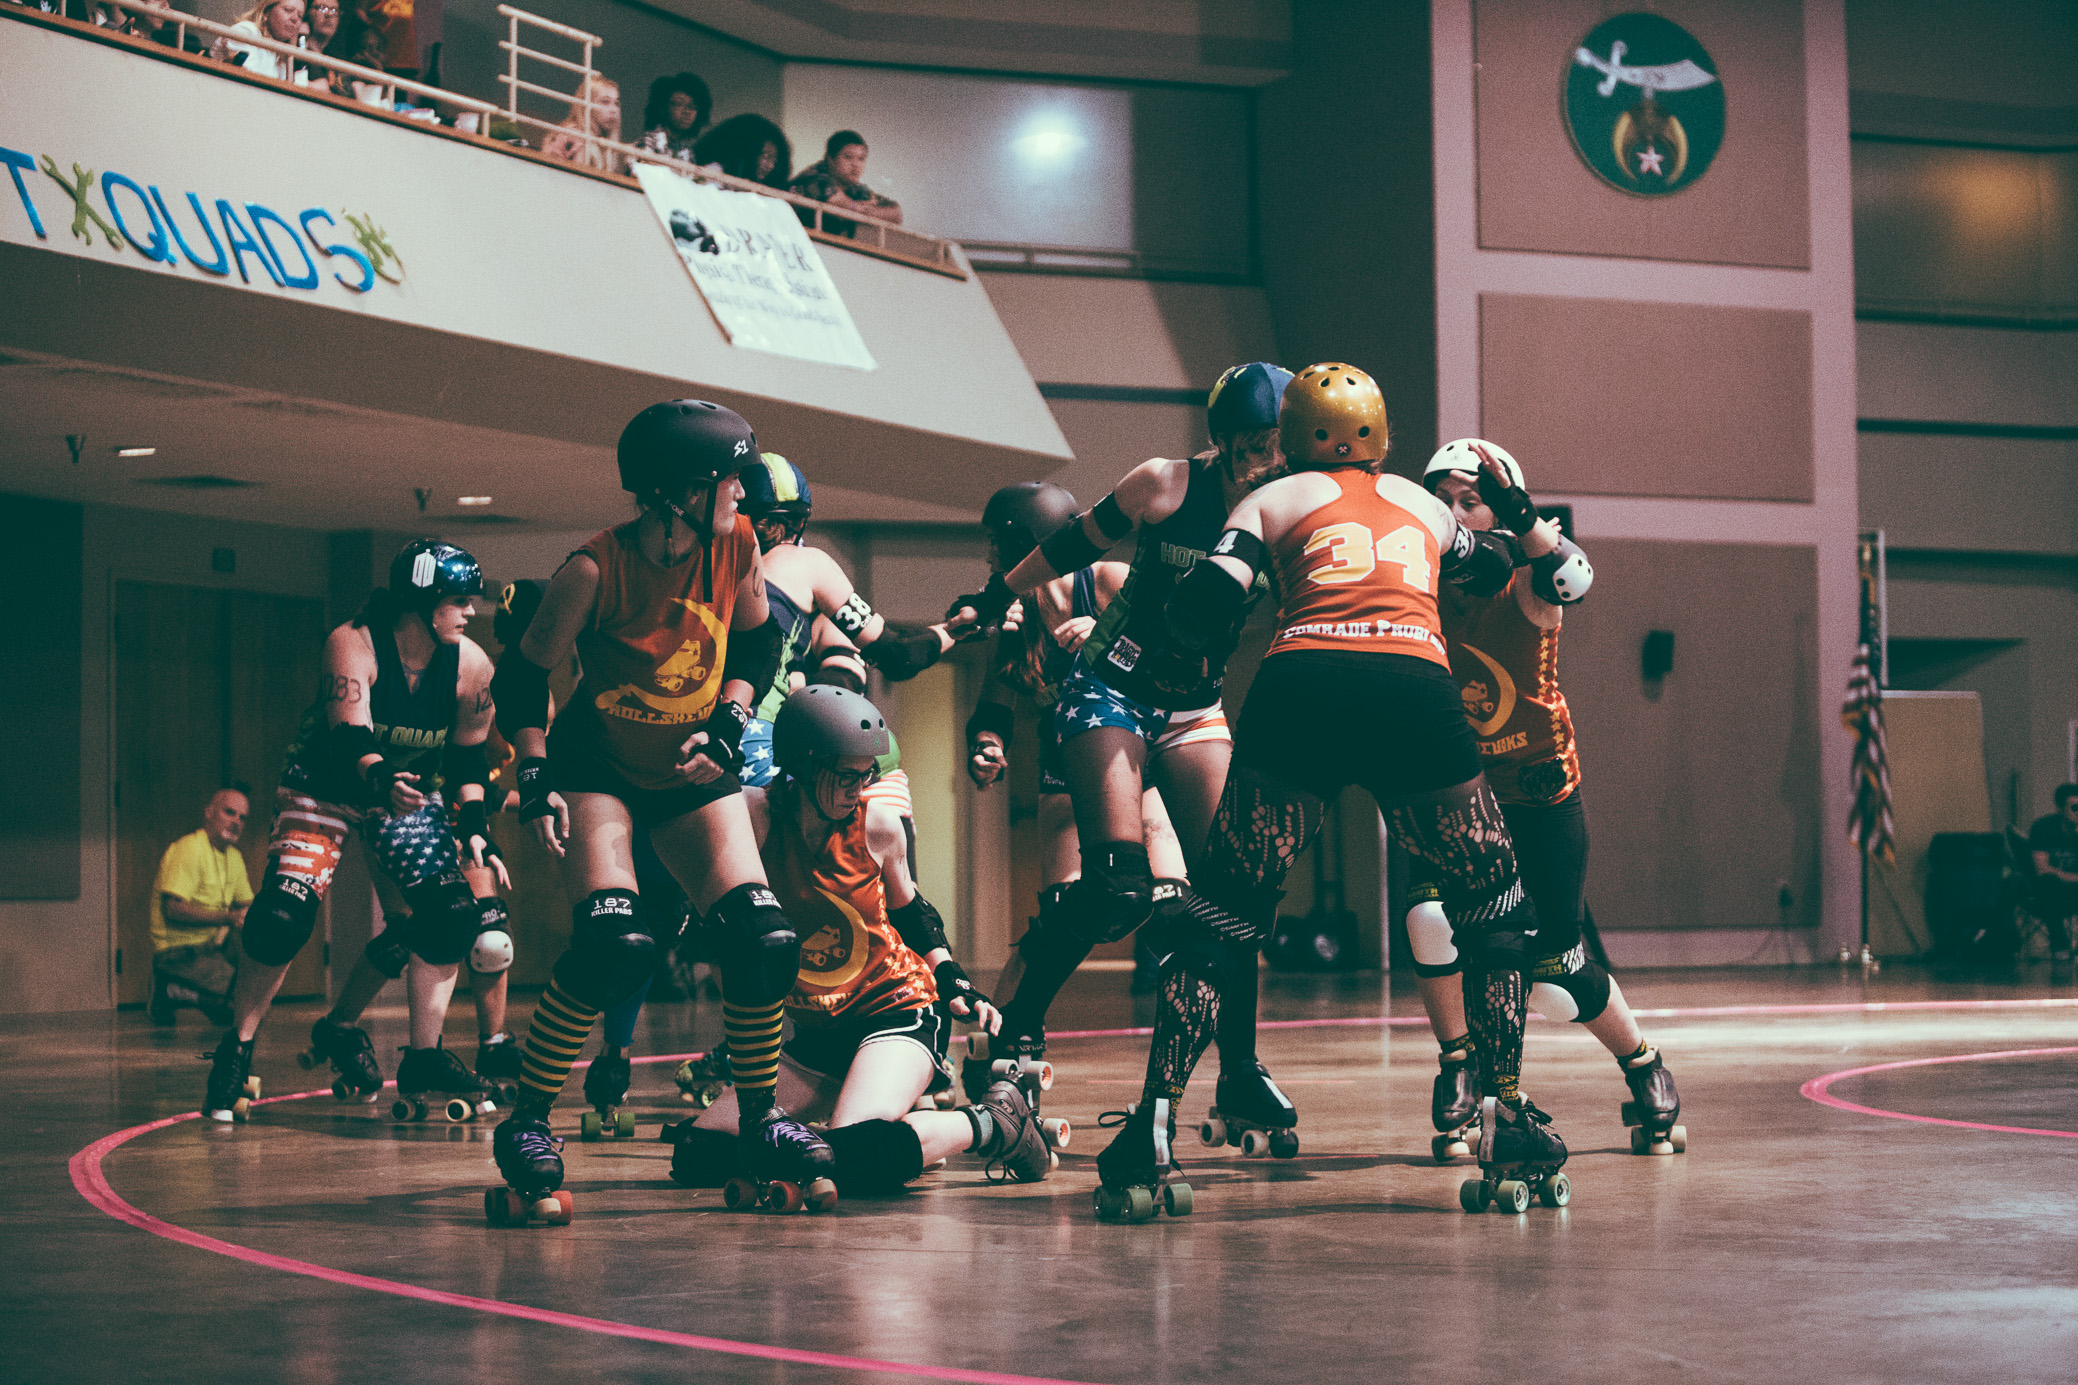 The Tragic City Rollers last home bout of 2017 featured the Hot Quads vs. the Rollsheviks and took place at the Zamora Shrine Center in Birmingham, Alabama on August 12th, 2017. (Photo by David A. Smith/DSmithScenes)